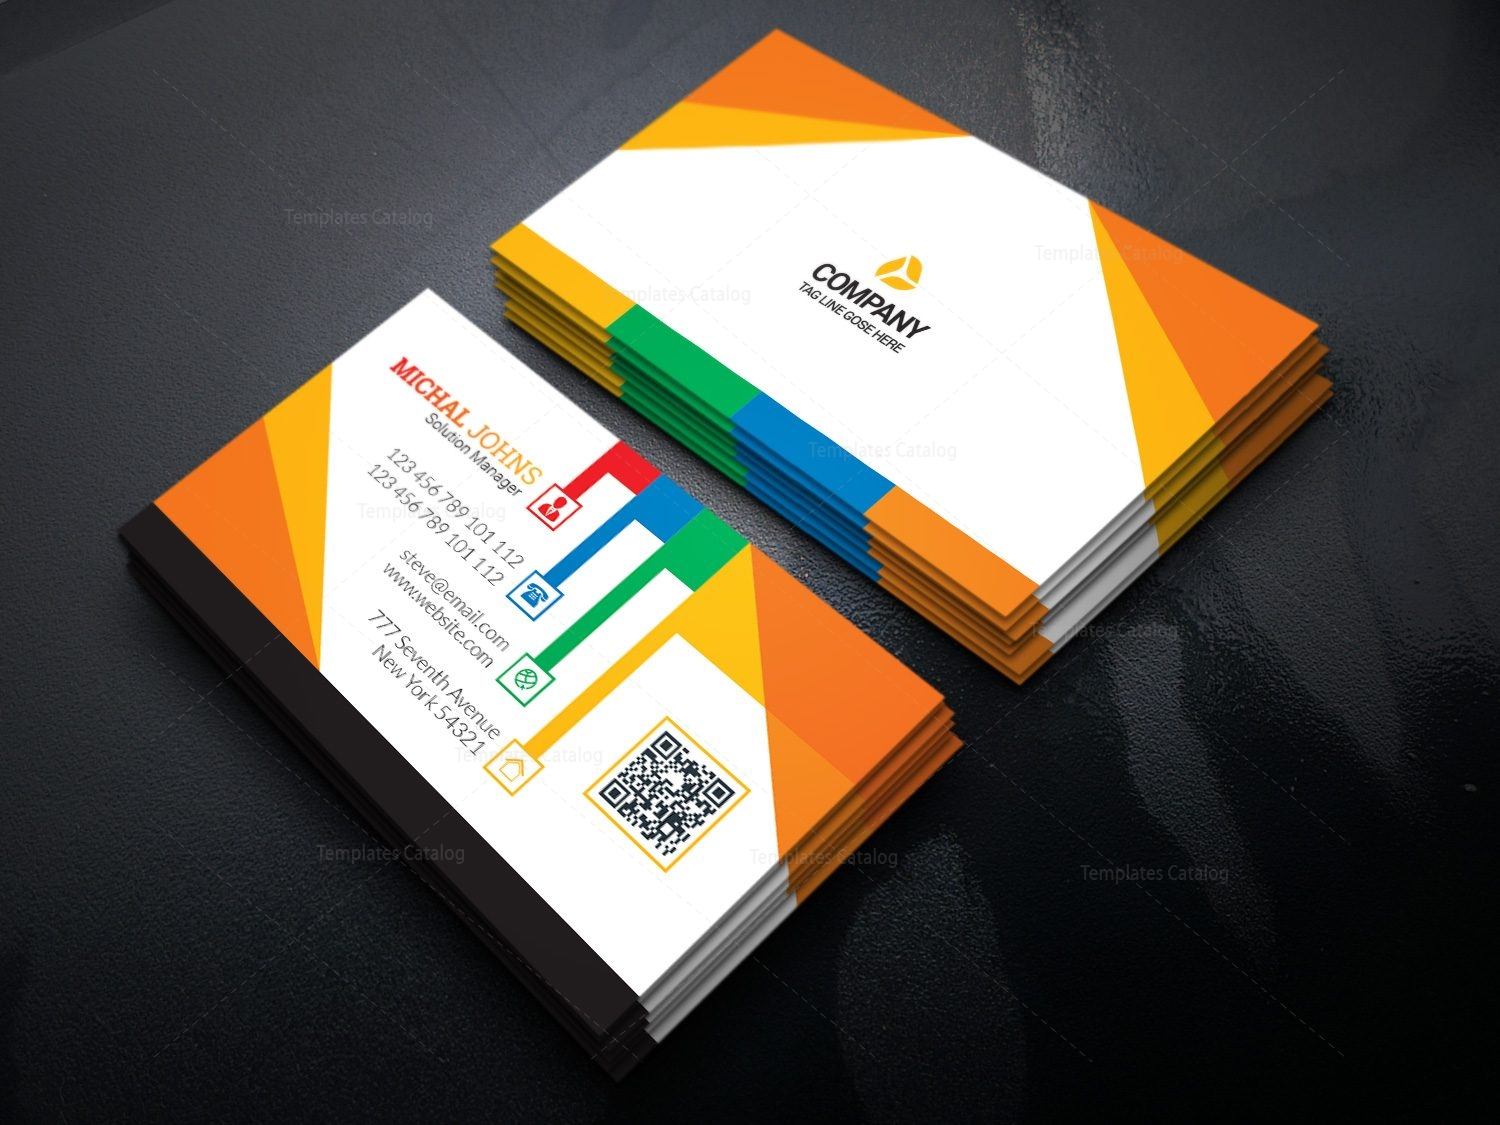 colorful stylish business card design template 001634 template catalog. Black Bedroom Furniture Sets. Home Design Ideas